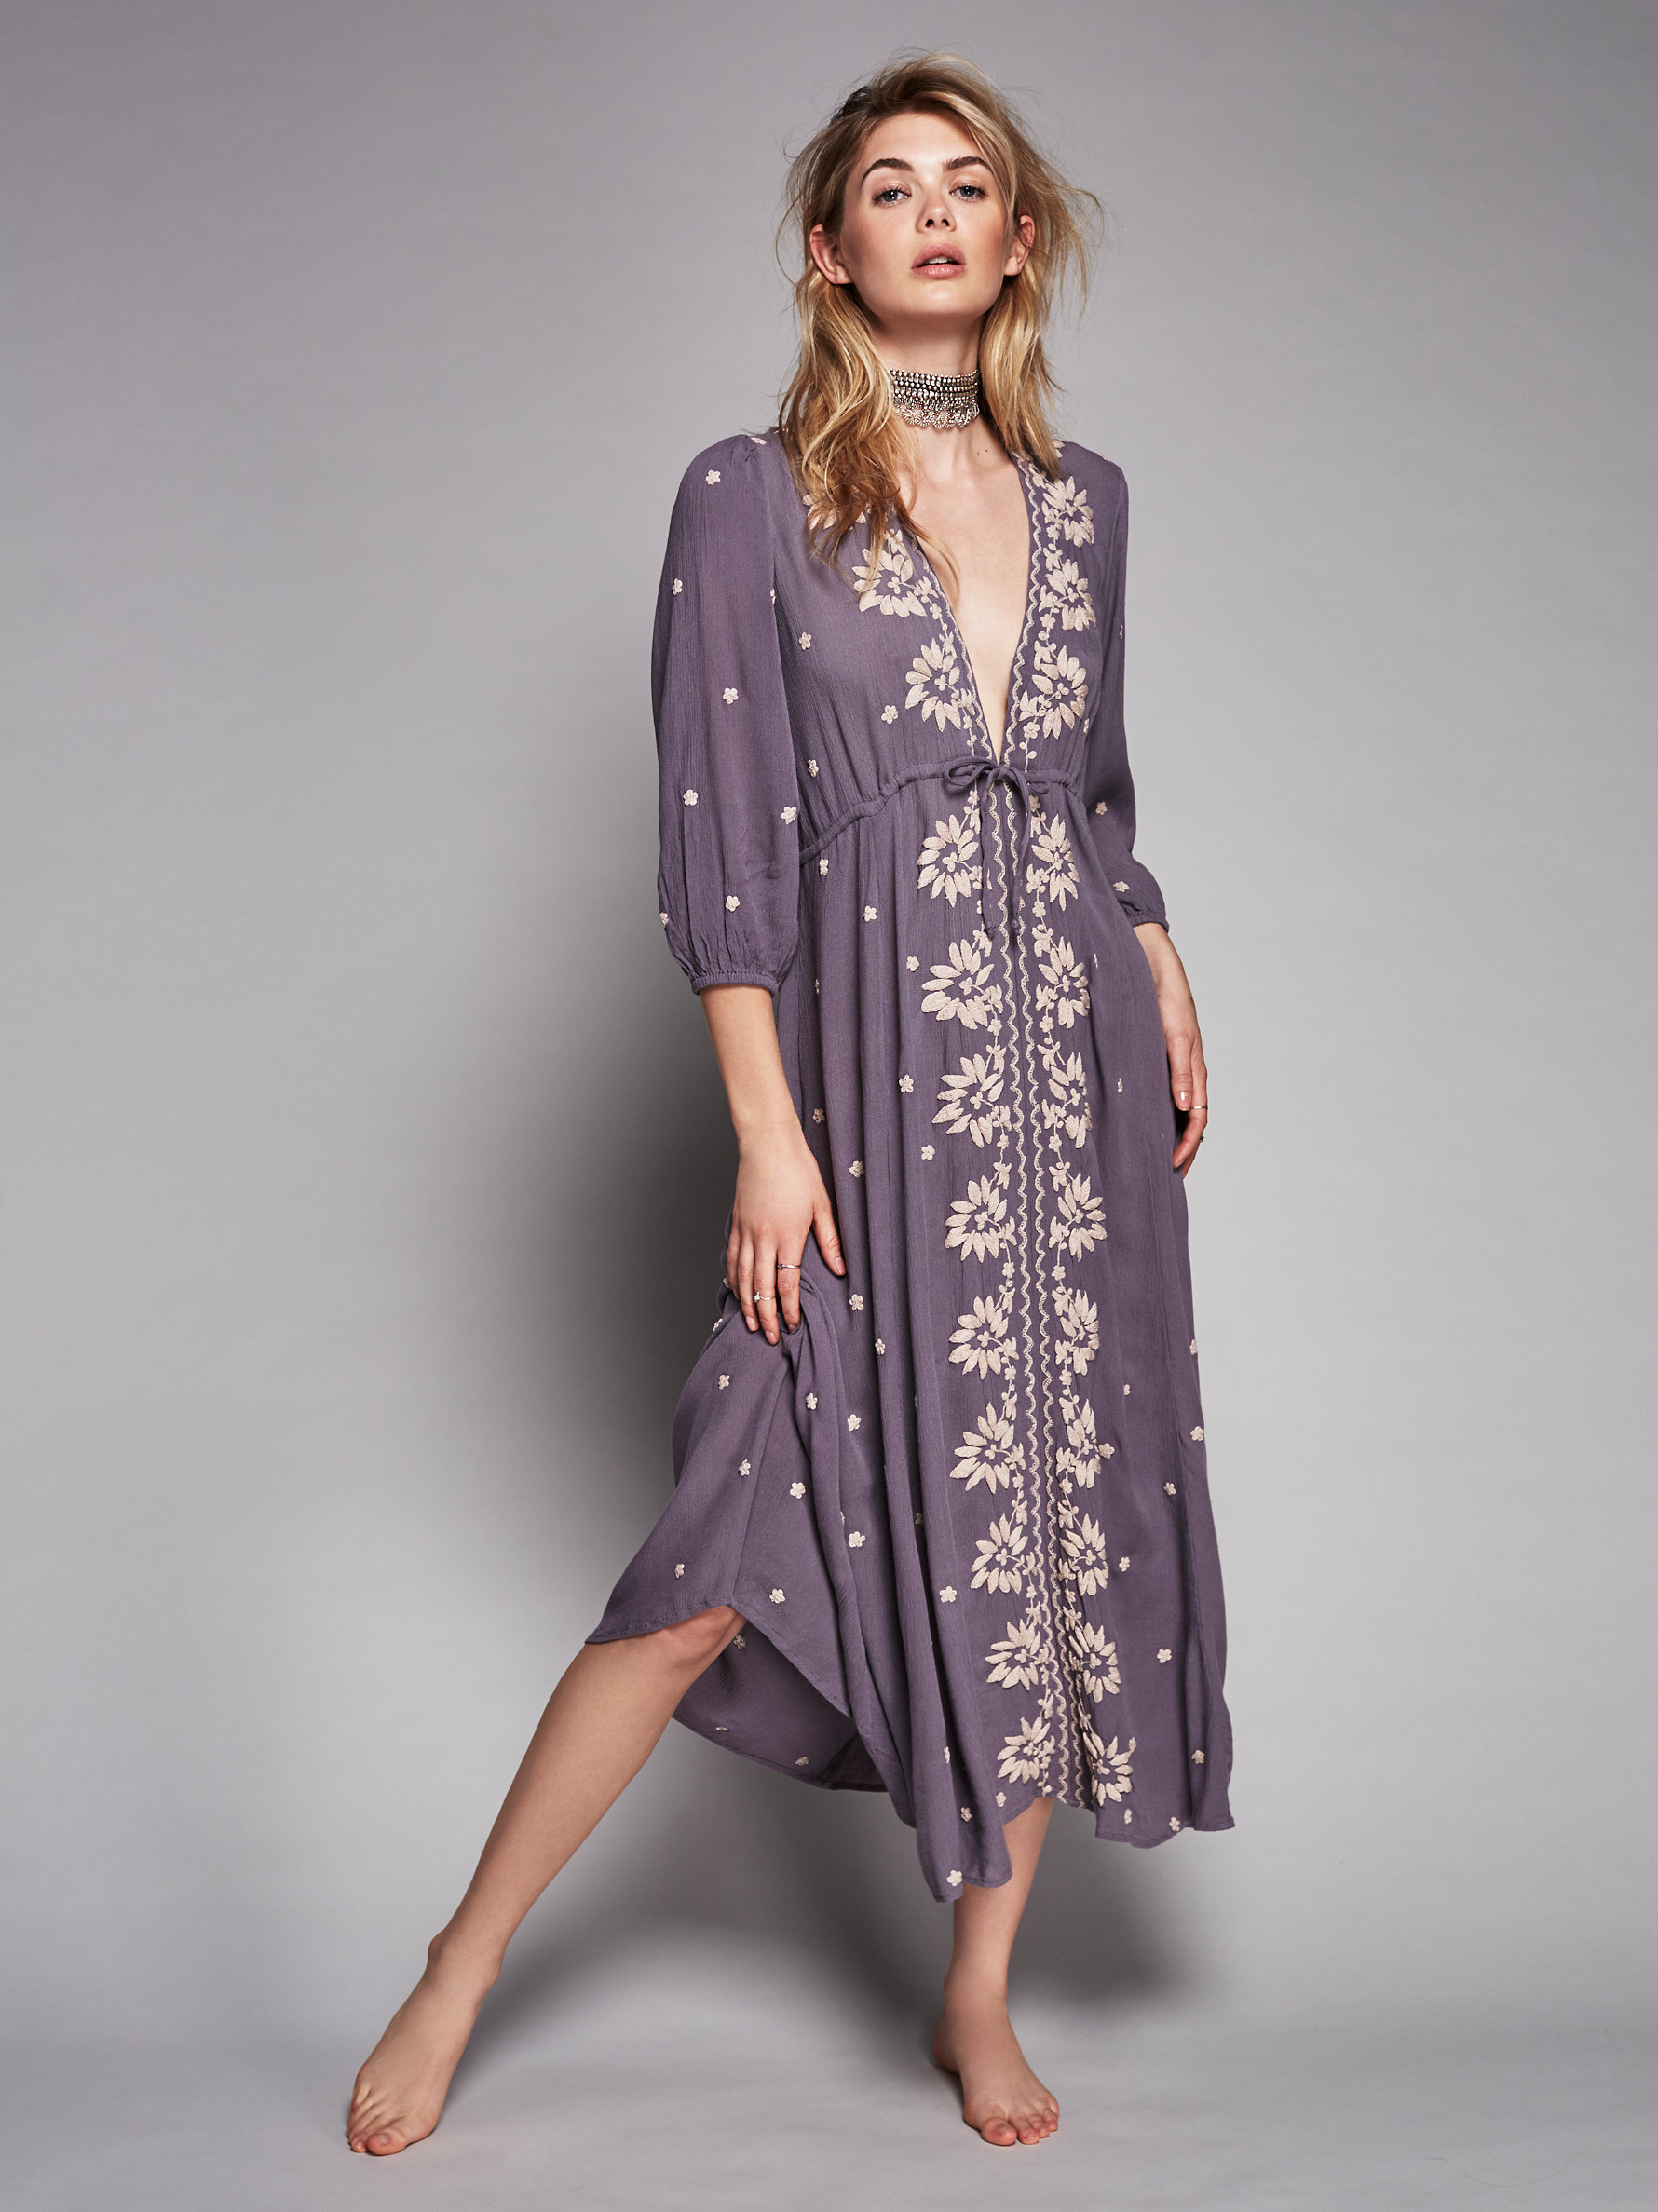 Free People Embroidered Fable Dress In Purple Lyst